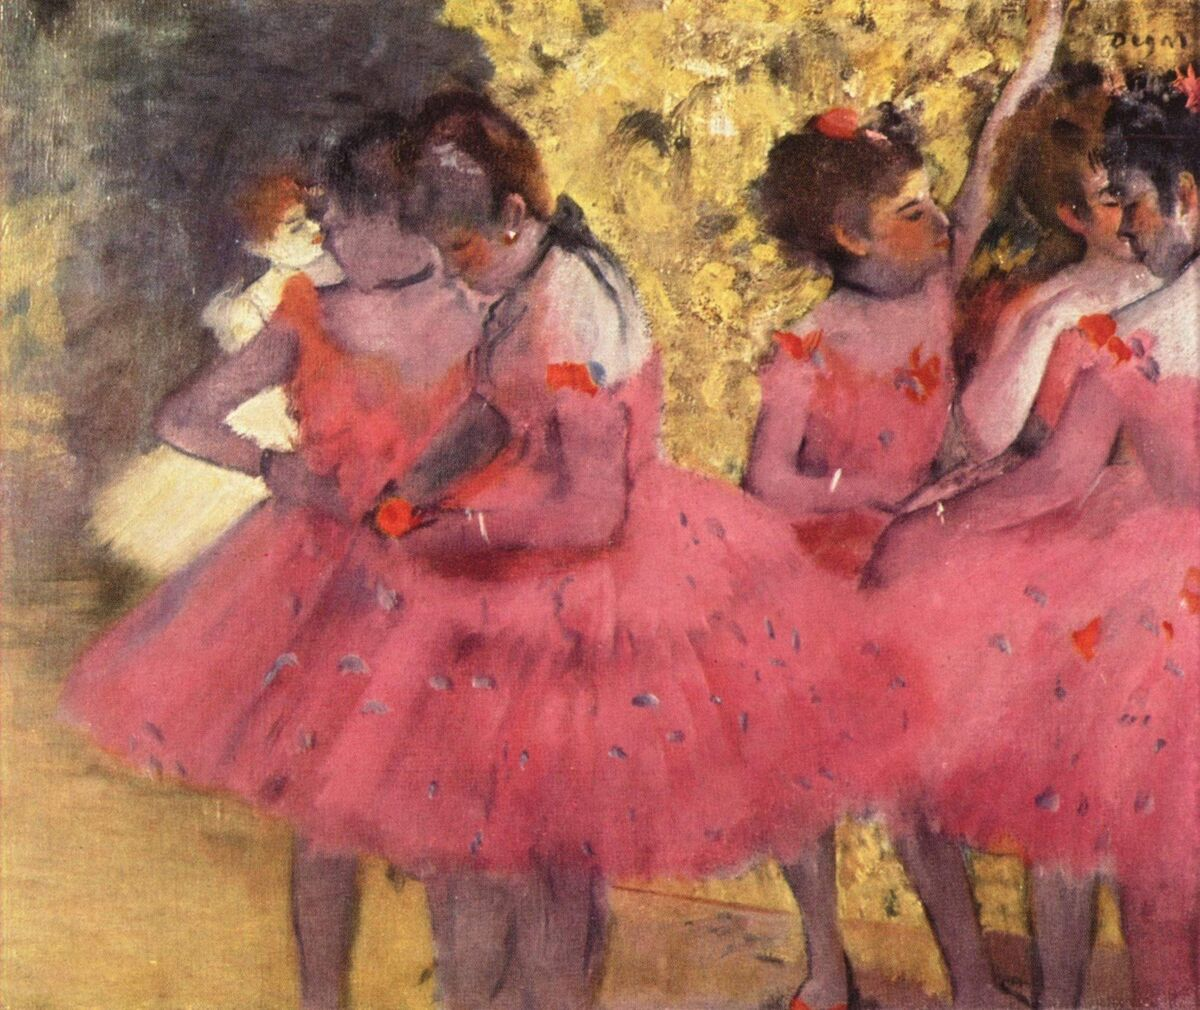 Edgar Degas, The Pink Dancers, Before the Ballet, 1884.  Image via Wikimedia Commons.